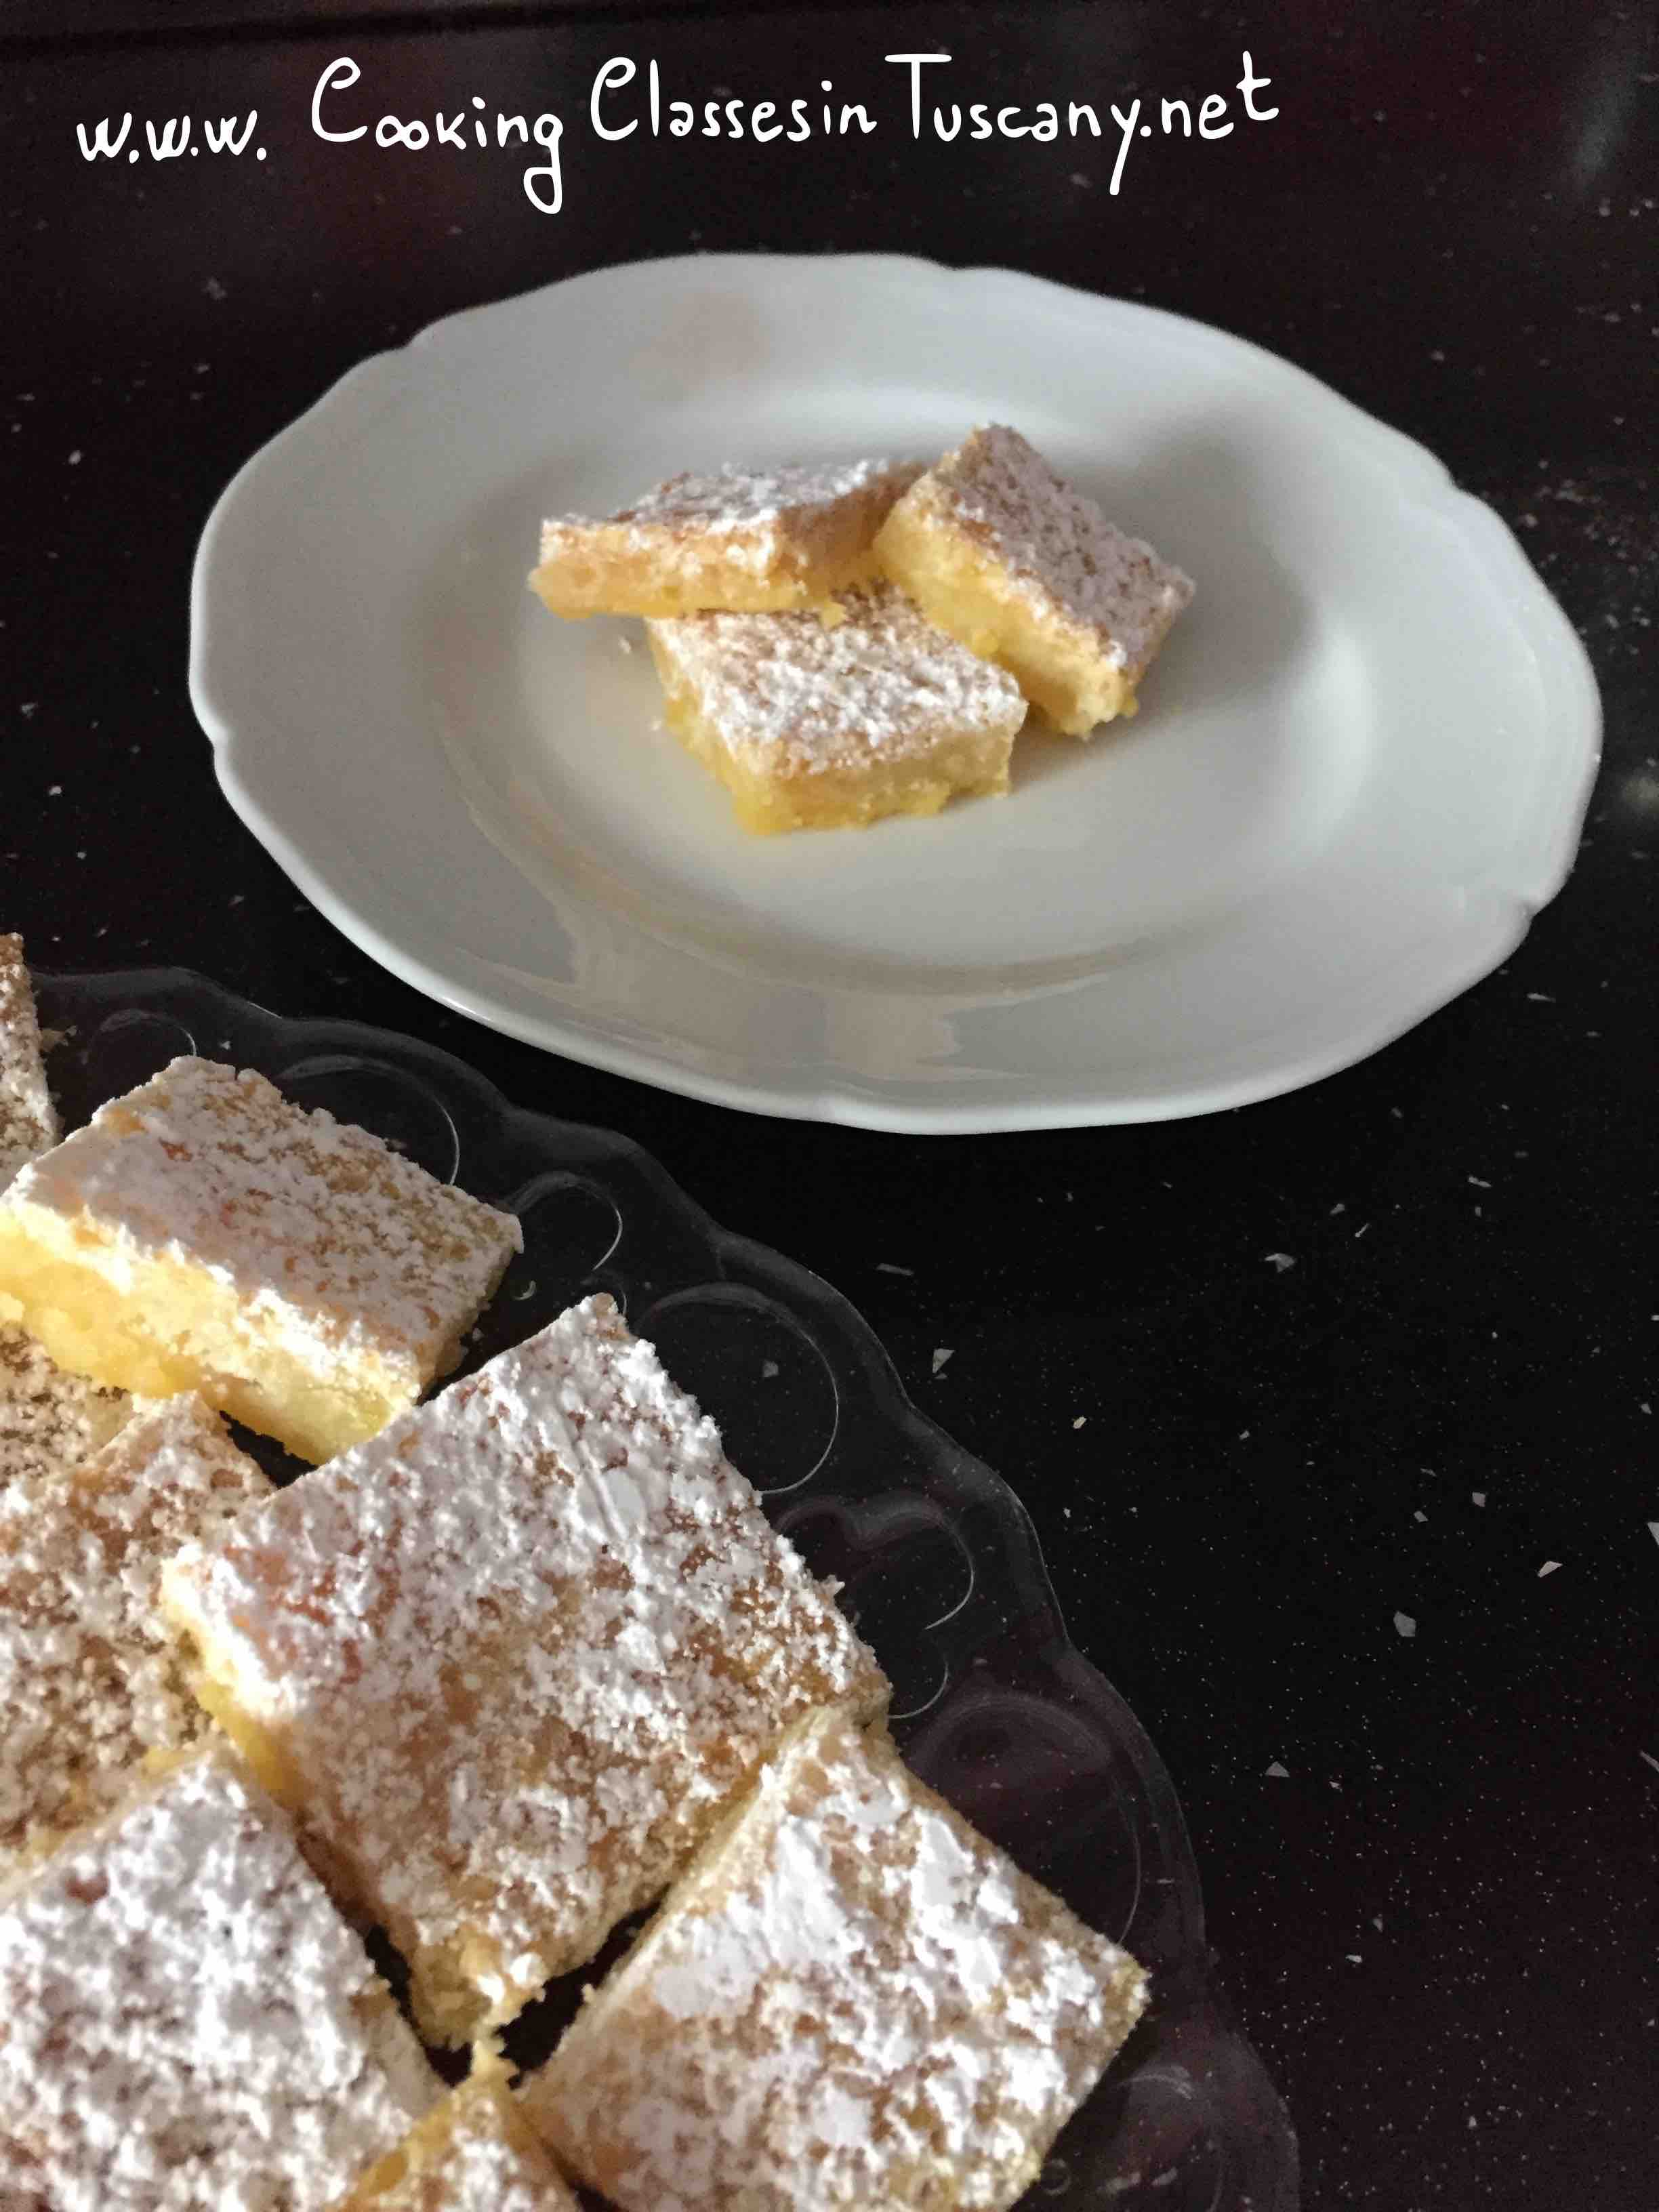 the best lemon bars from tuscany recipe